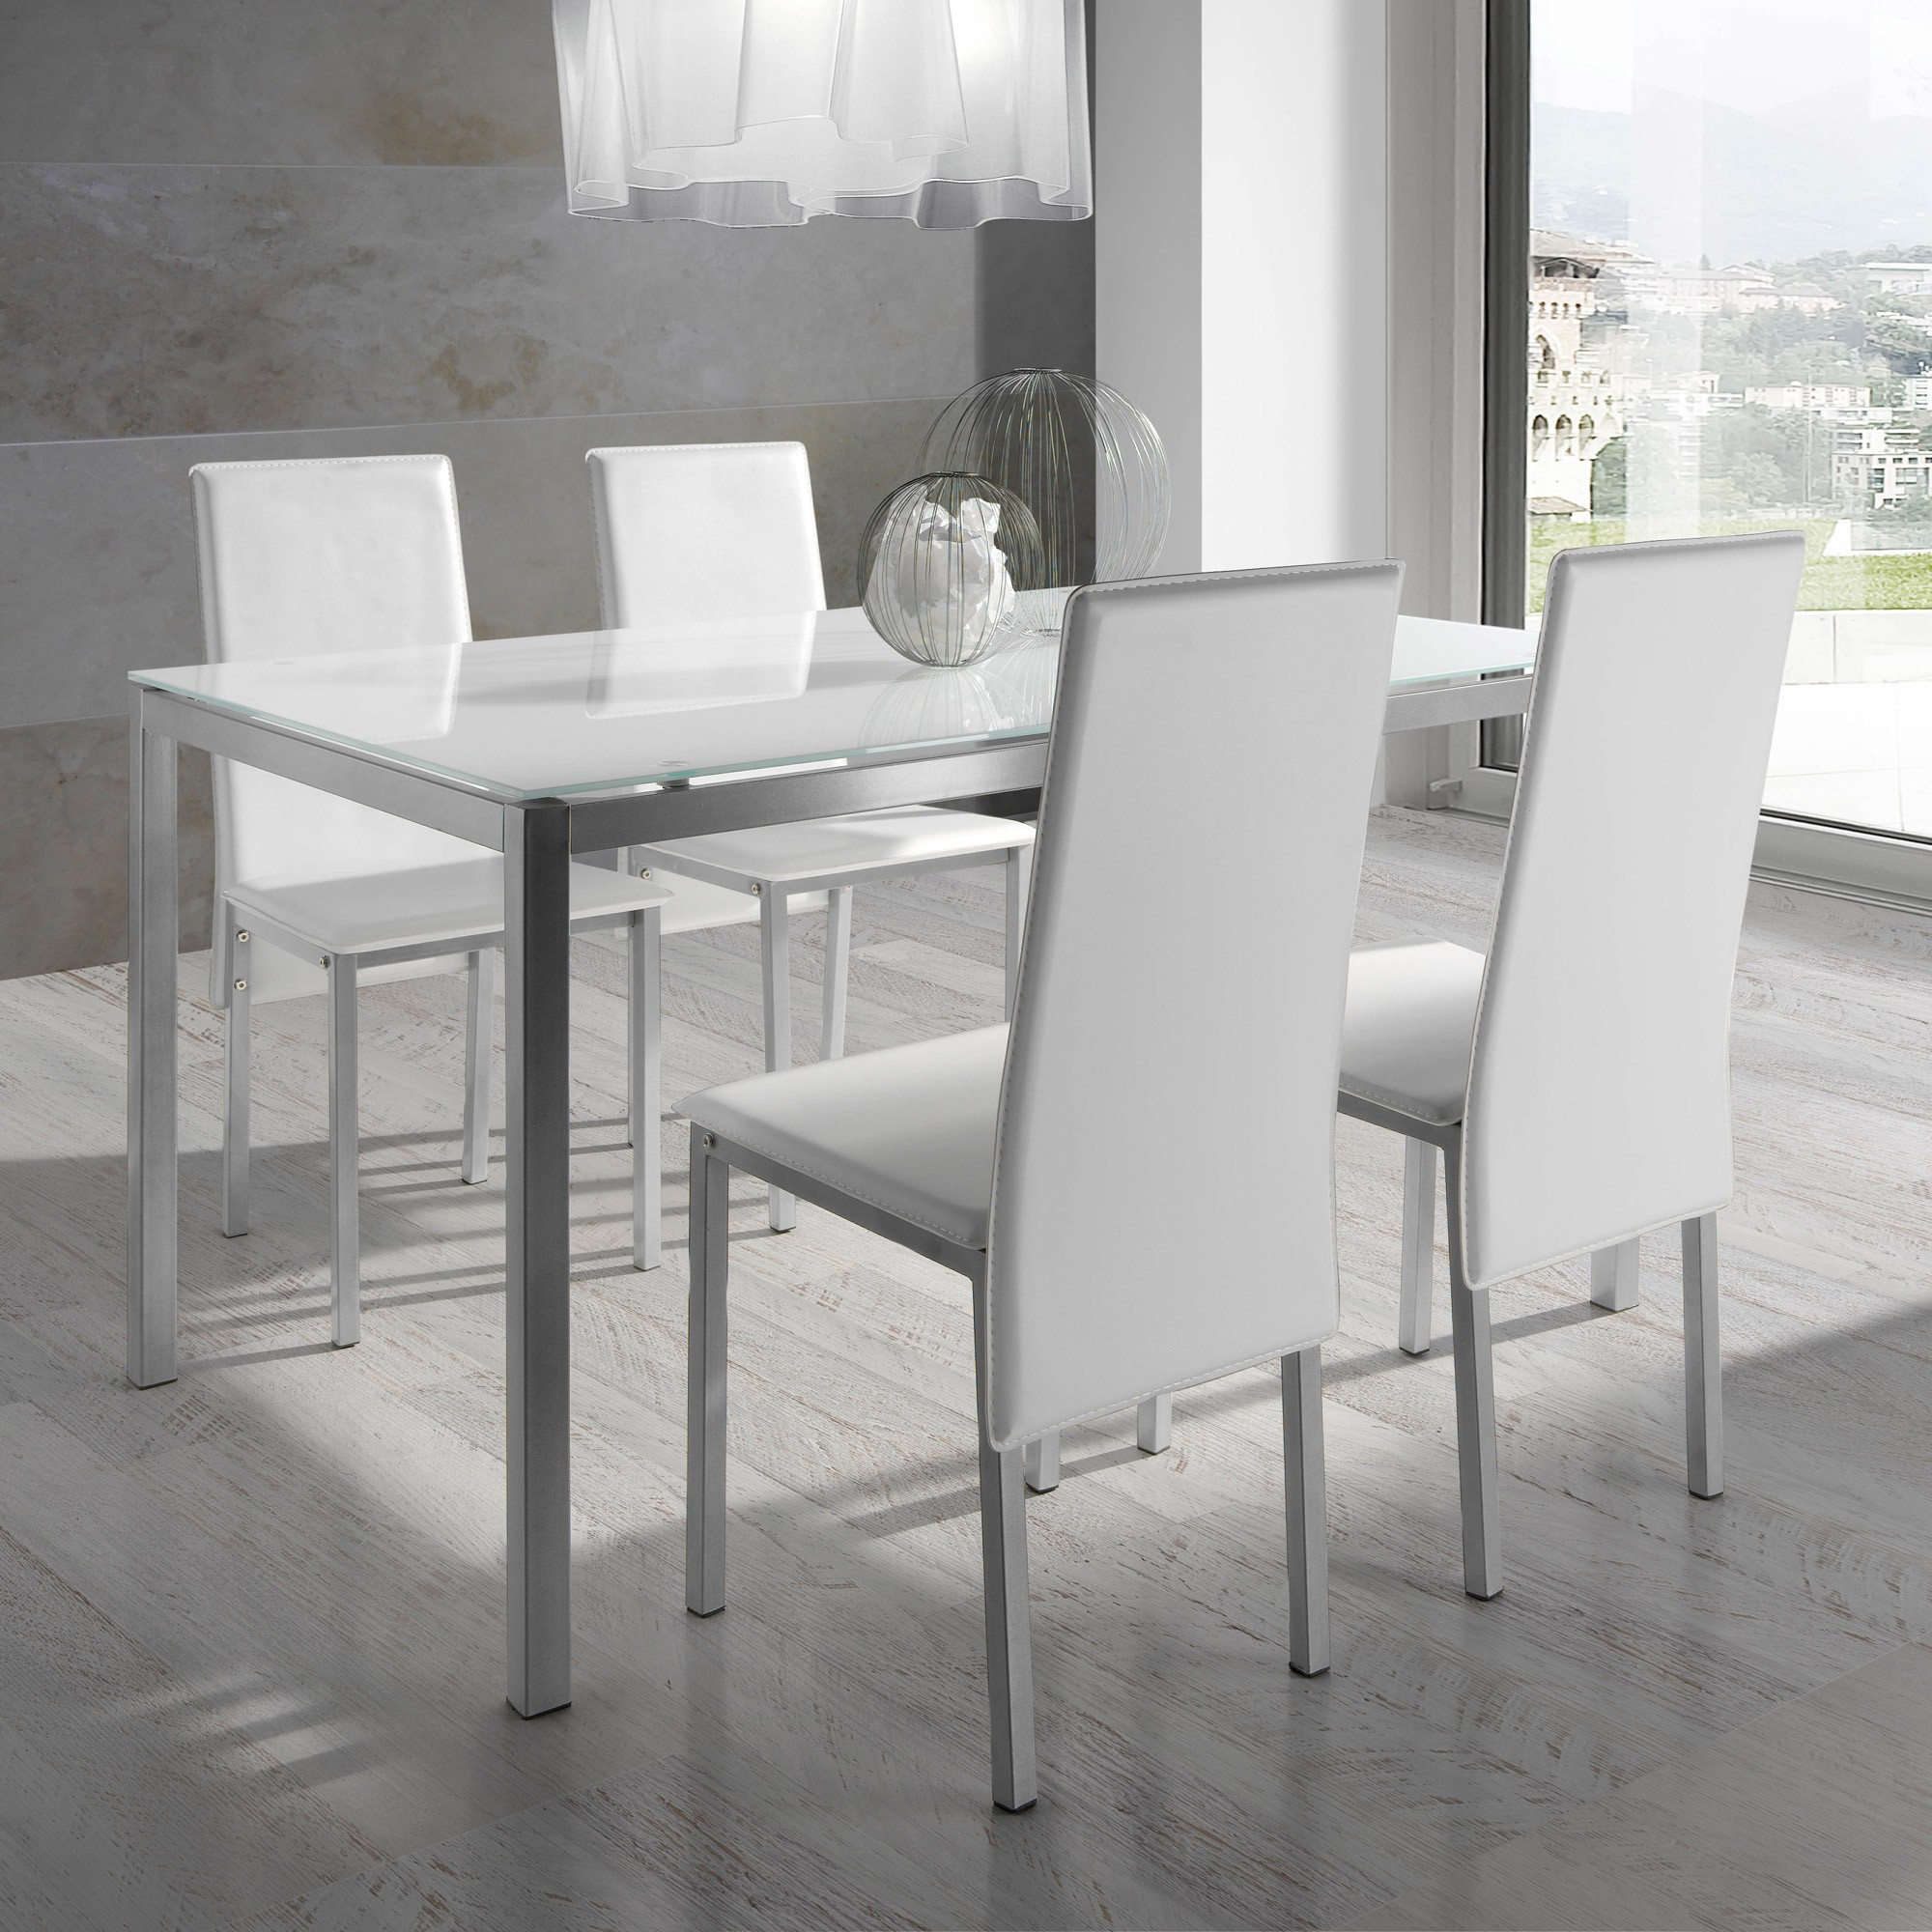 Ensemble table et chaise salle a manger but chaise for Chaise de salle a manger blanche